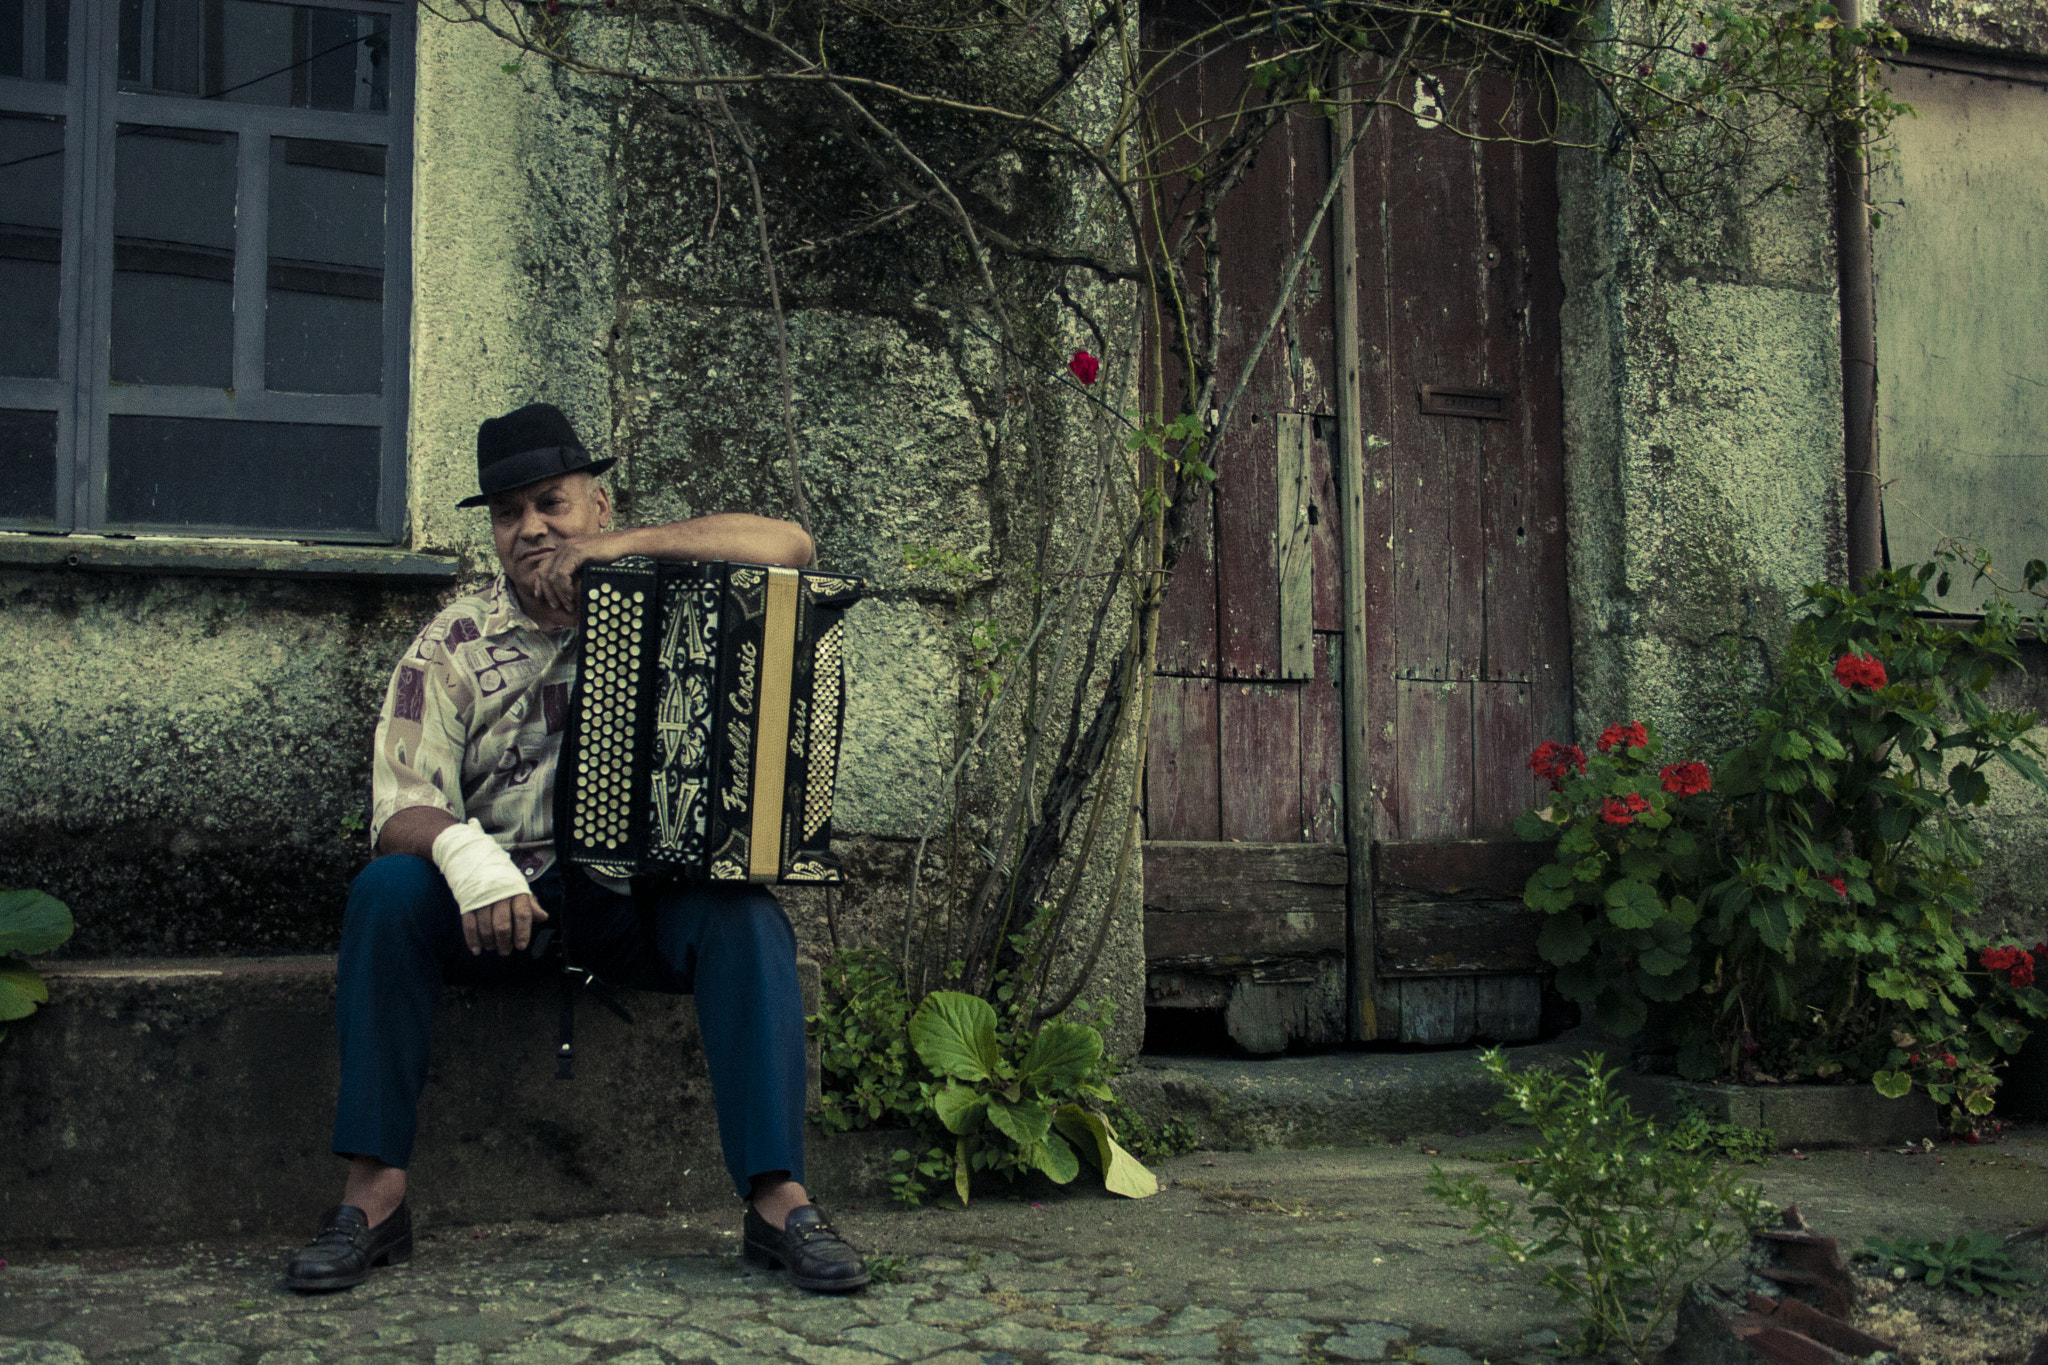 Photograph The Musician With the Broken Hand by Andrea Rocha on 500px